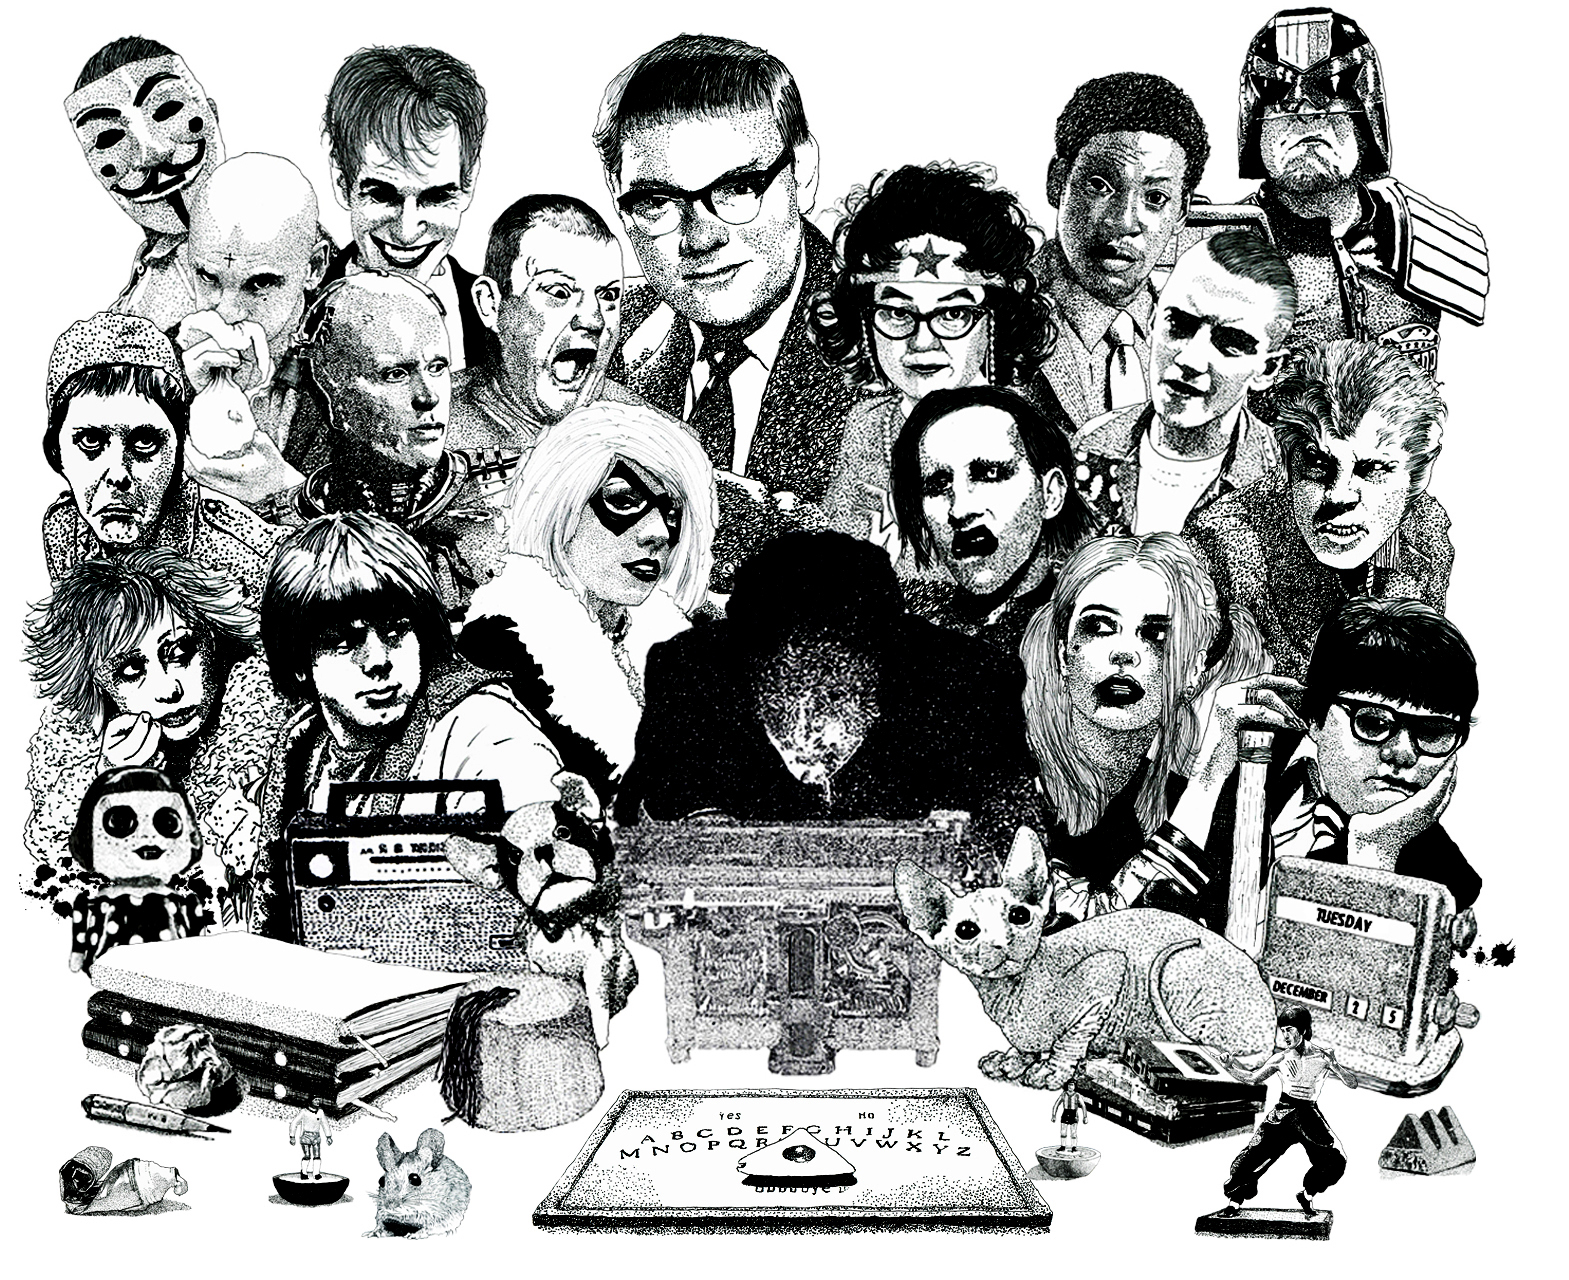 Psychic Investigator Hamilton Coe surrounded by allies and adversaries. Featured characters include Marilyn Manson, Roland Browning, Erkan Mustafa, Roots Manuva, Judge Dredd, Robocop, Jilted John, Honey Bane, Genesis P Orridge